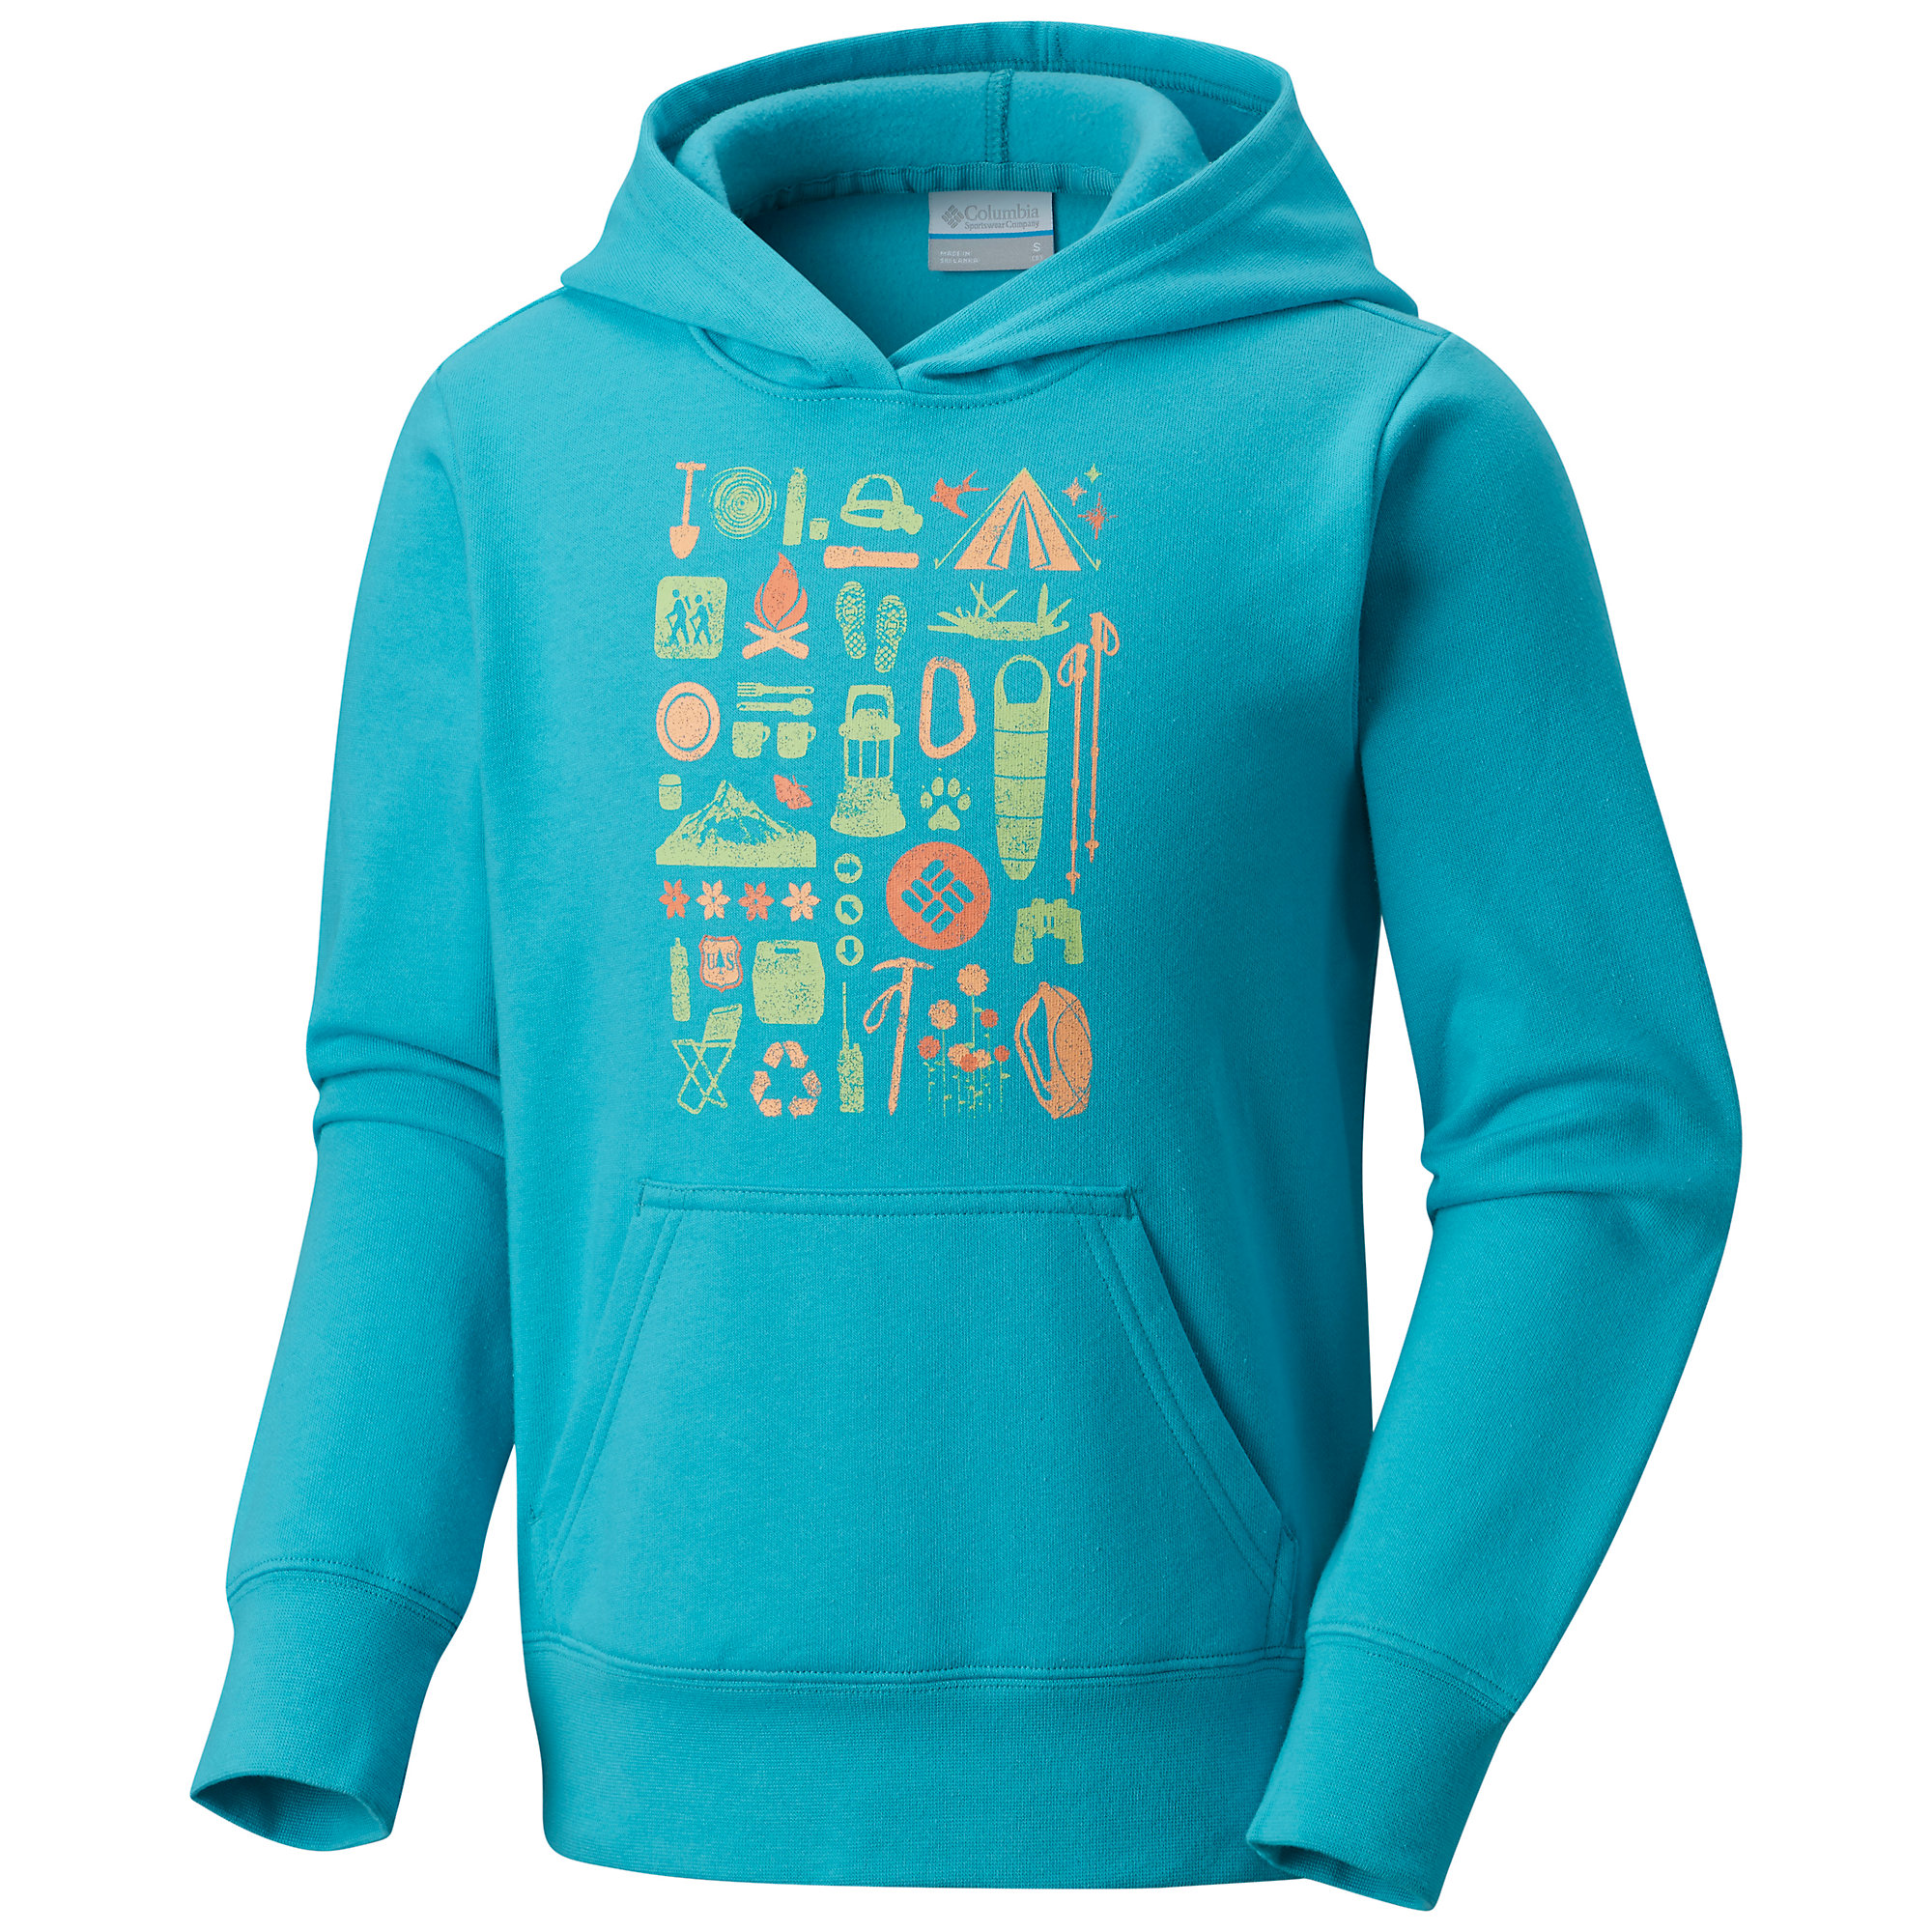 Columbia CSC Youth Hoodie 732 L-